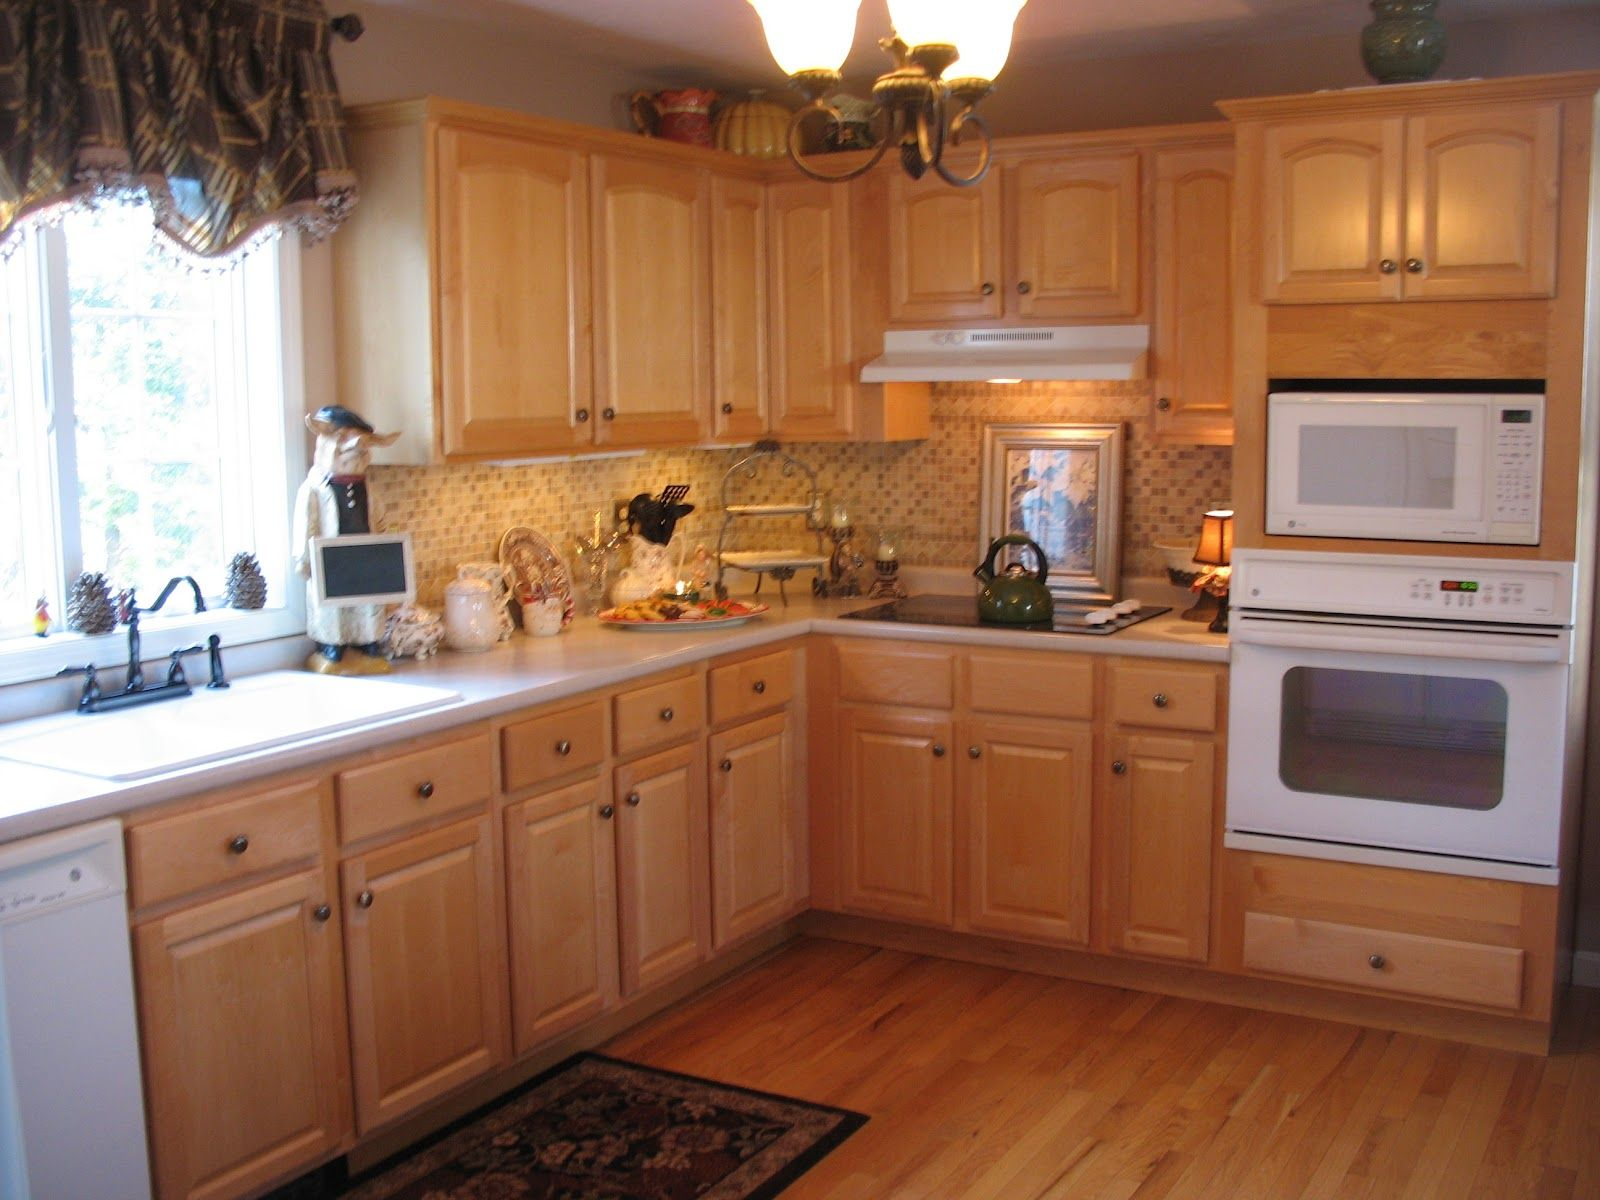 Kitchen Design With Oak Cabinets find this pin and more on kitchens kitchen paint colors oak cabinets with island design 78 Images About Kitchen Ideas On Whitewash Cabinets